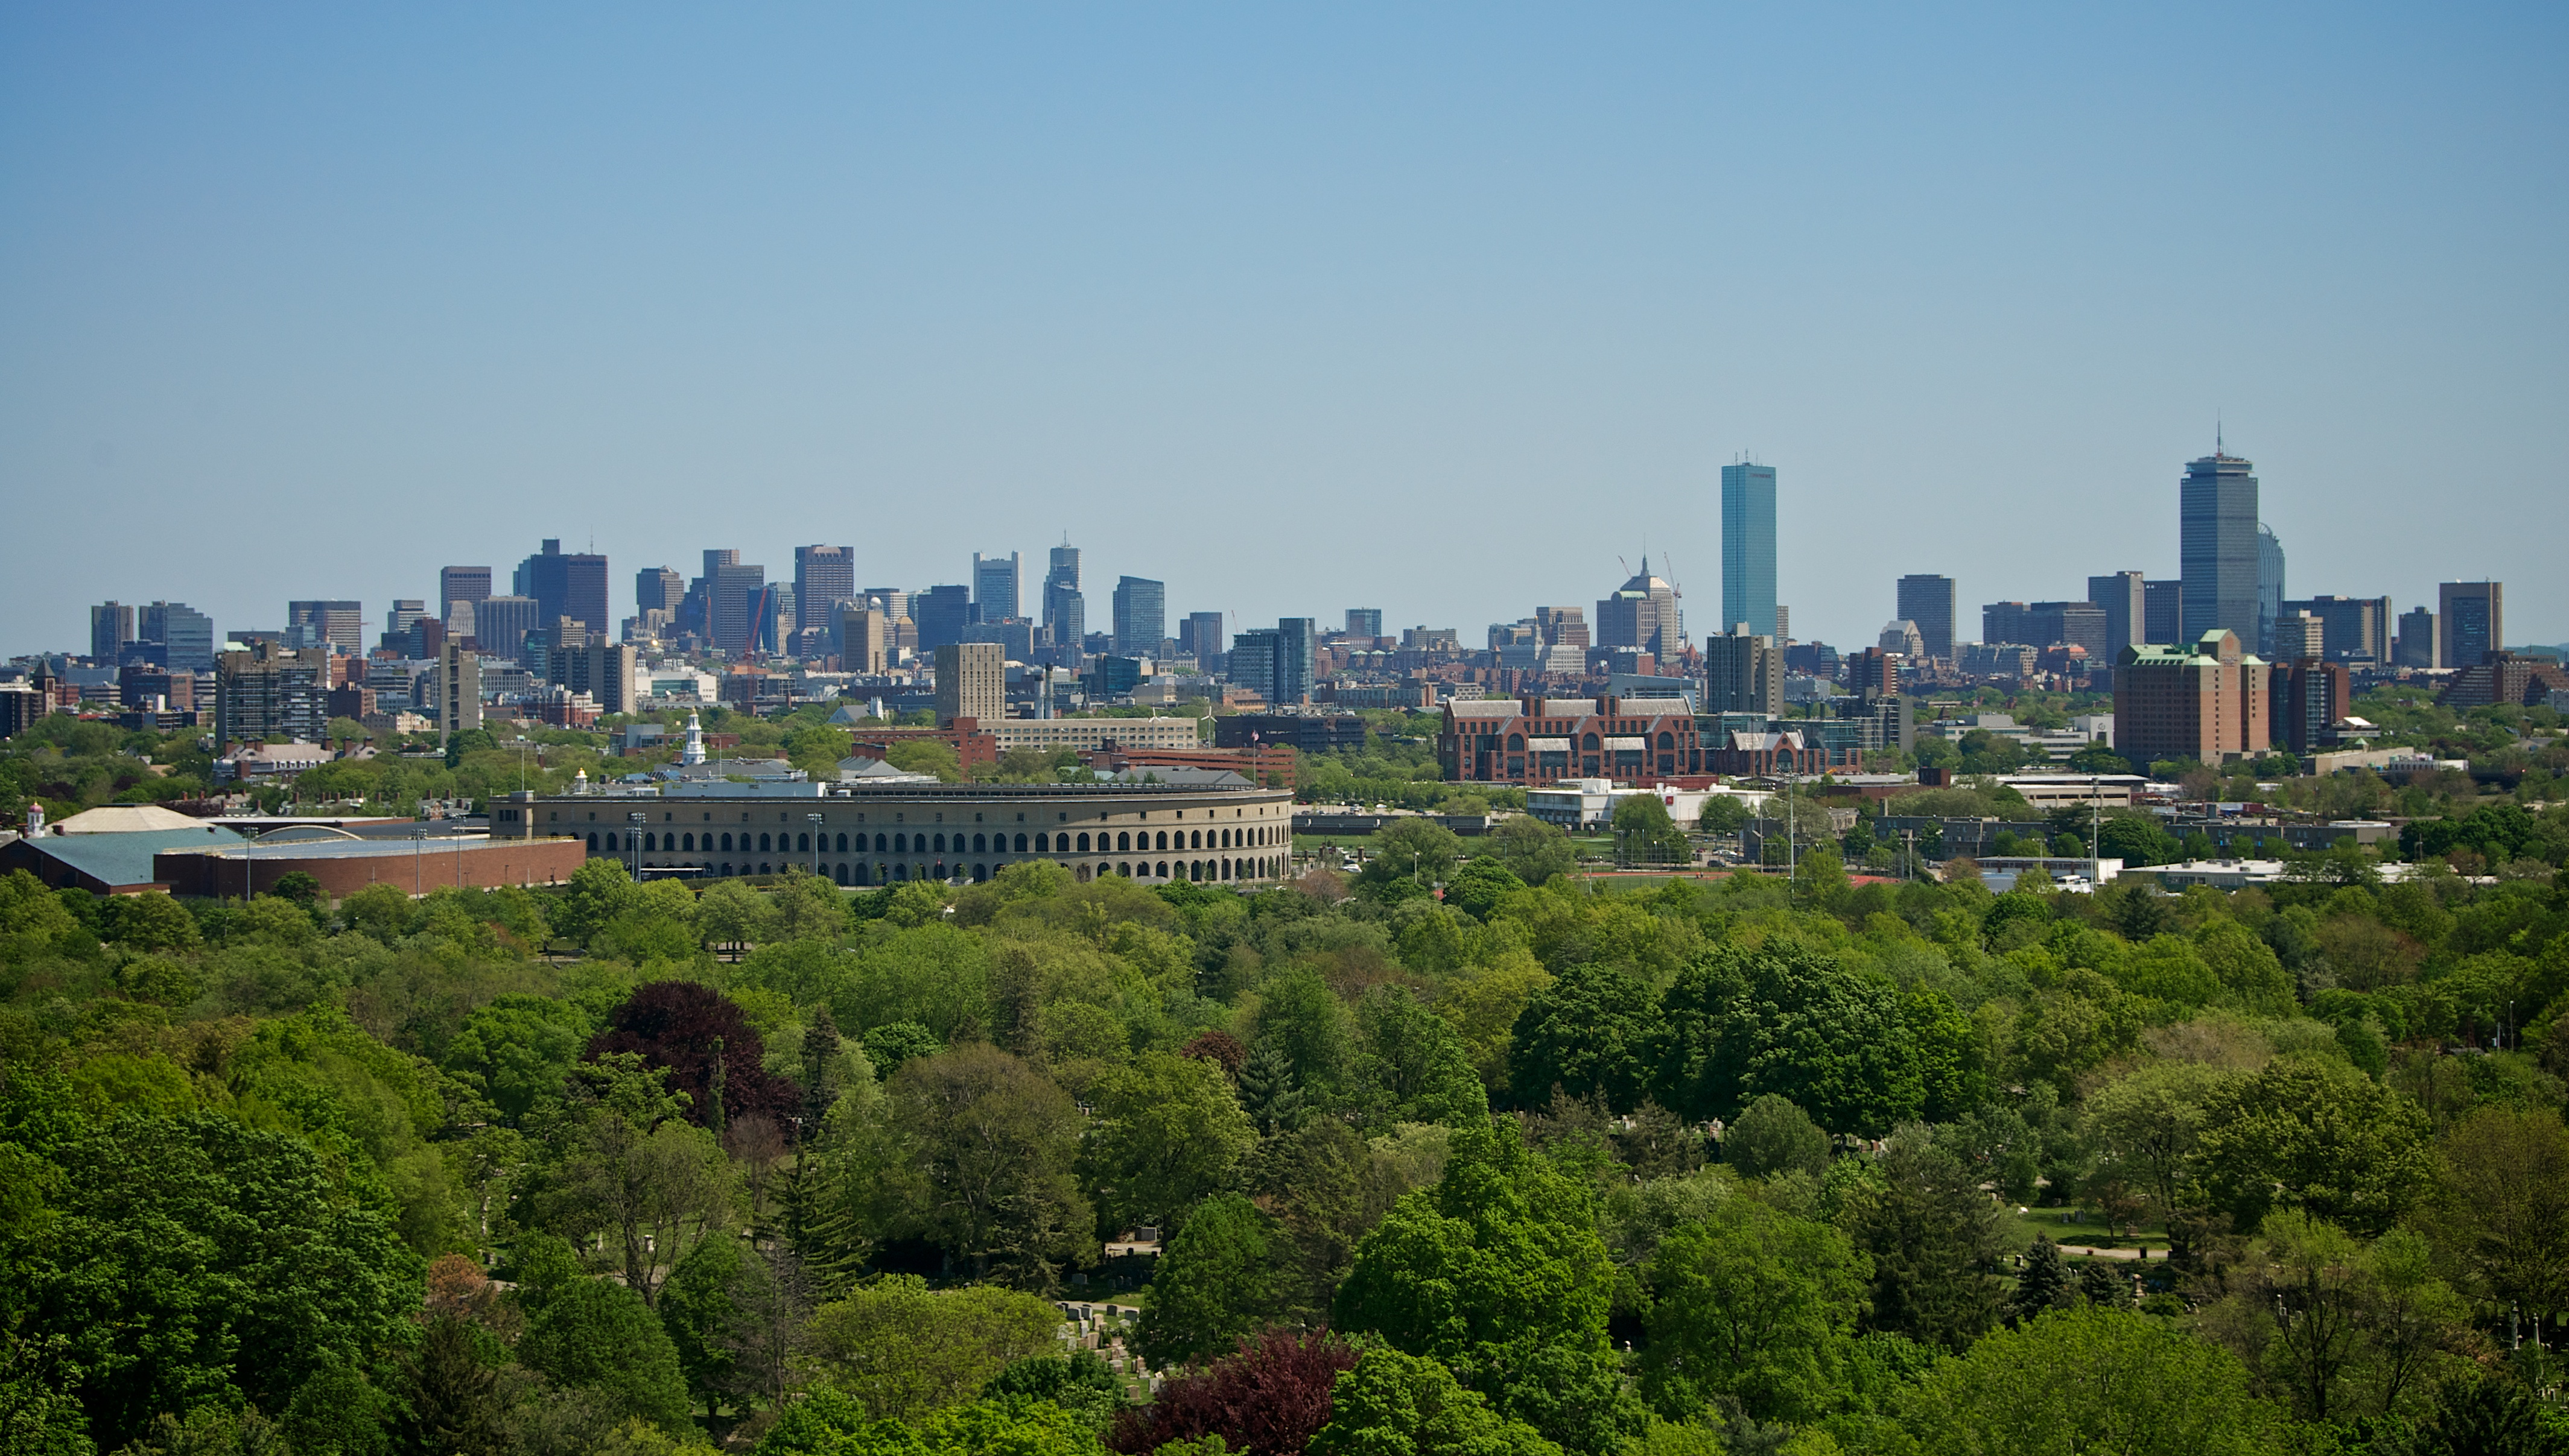 she Boston skyline fro the Tower at mt. Auburn, shot at 50mm with my ...